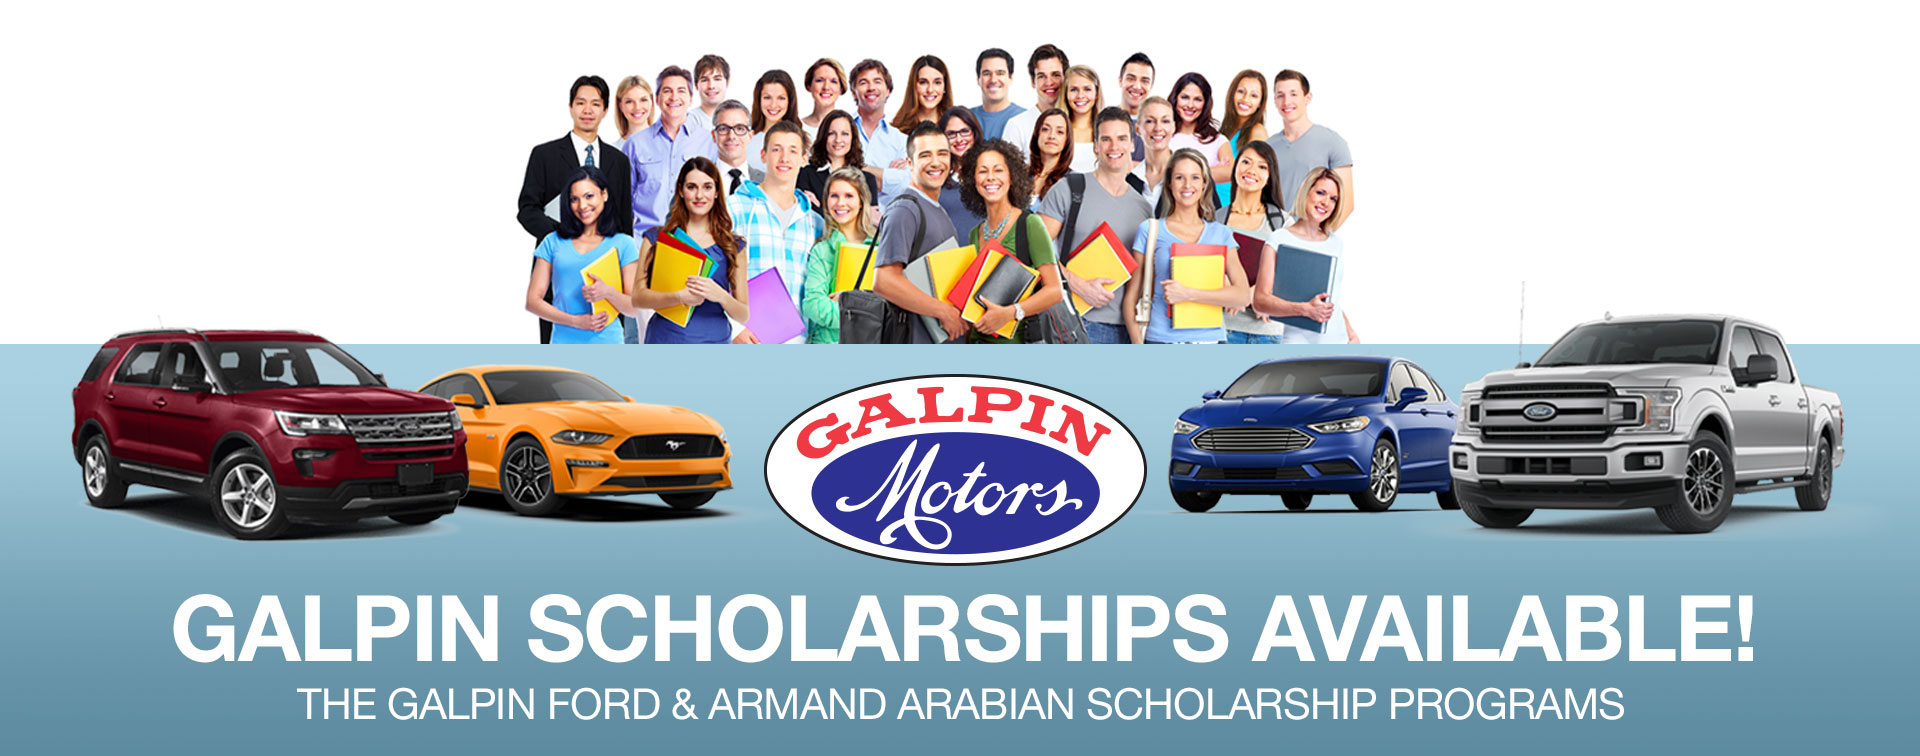 Galpin Scholarships Available Banner